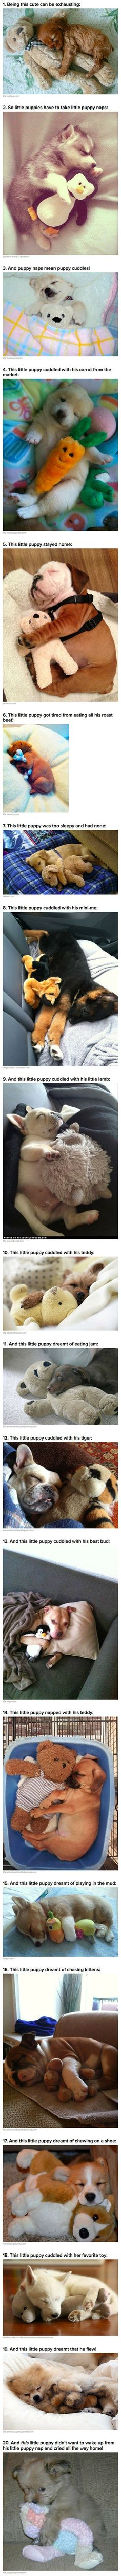 Puppies and Stuffed Animals Viral, Here is Why